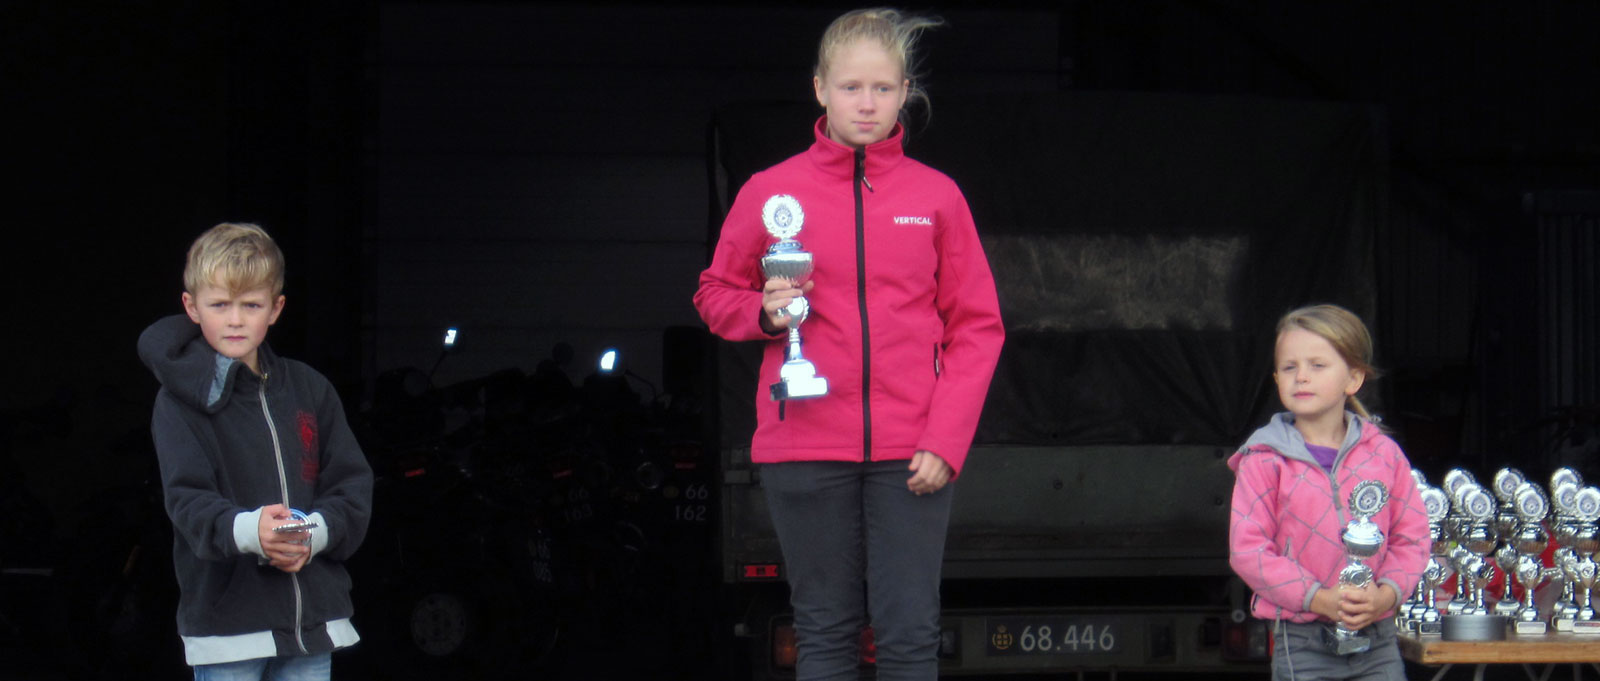 Supermotard Danmarksmesterskab SM Mini-Rookie-Open Nørresundby August 2014